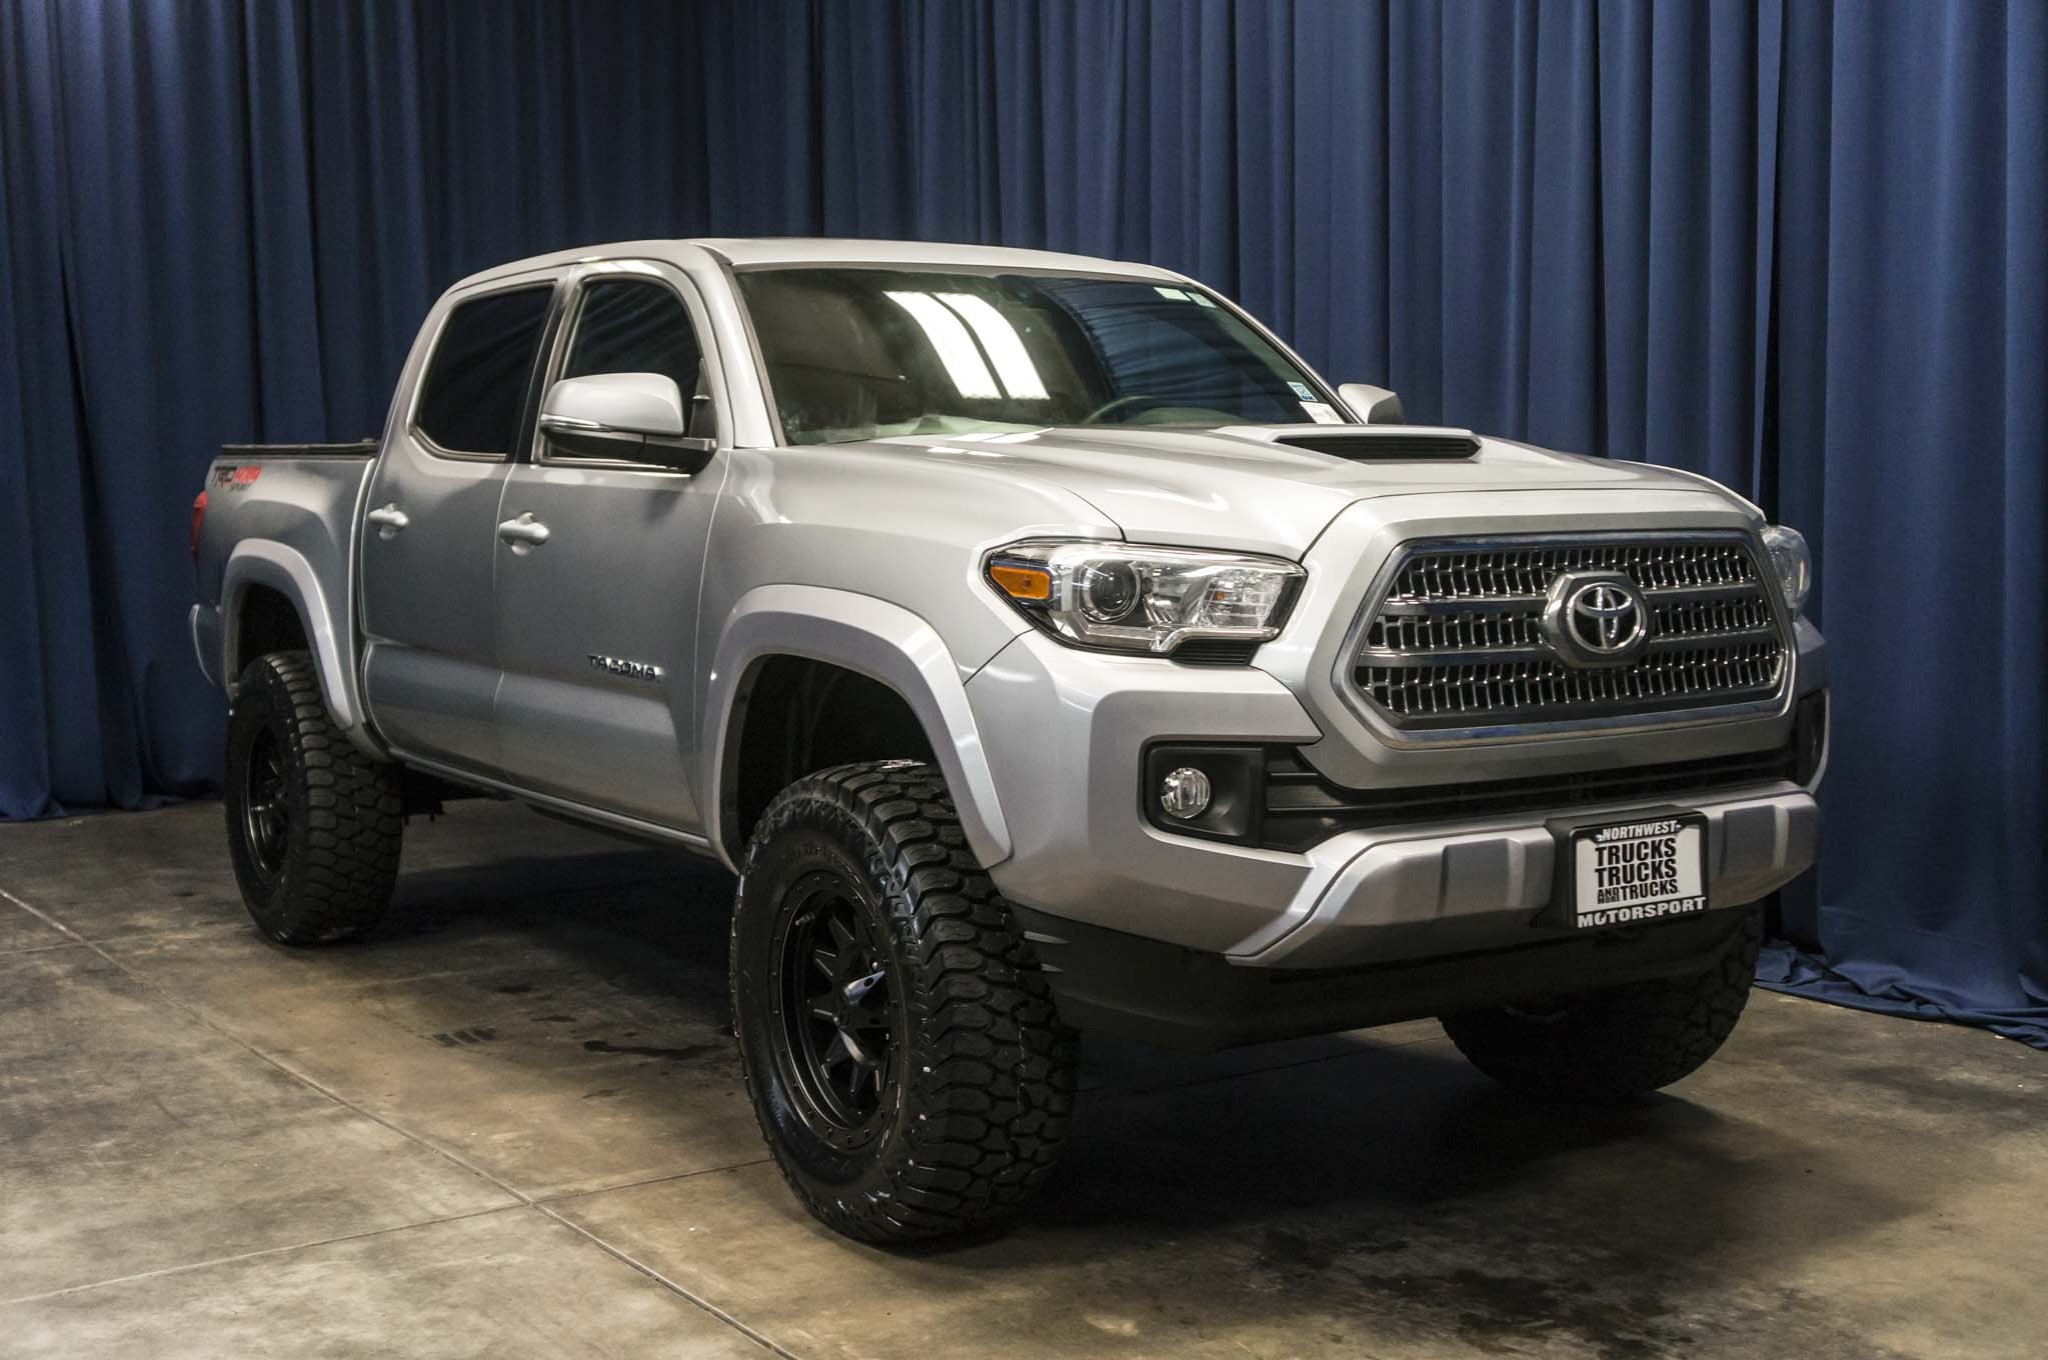 2017 toyota tacoma trd sport for sale with photos carfax. Black Bedroom Furniture Sets. Home Design Ideas